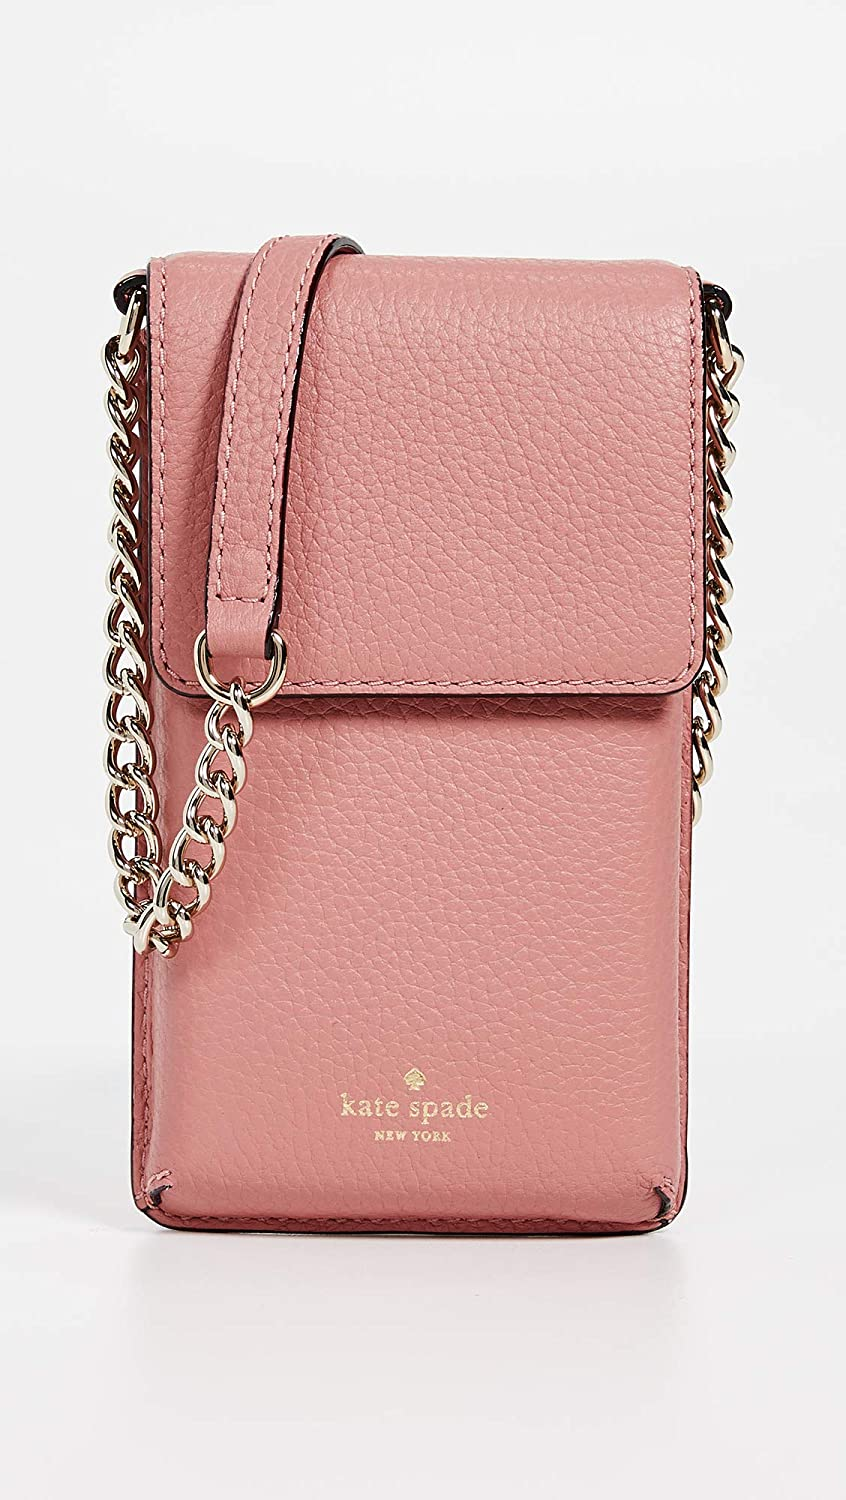 19d68808dc48 Amazon.com: Kate Spade New York Women's North South Phone Crossbody Bag,  Mauve Rose, Pink, One Size: Shoes